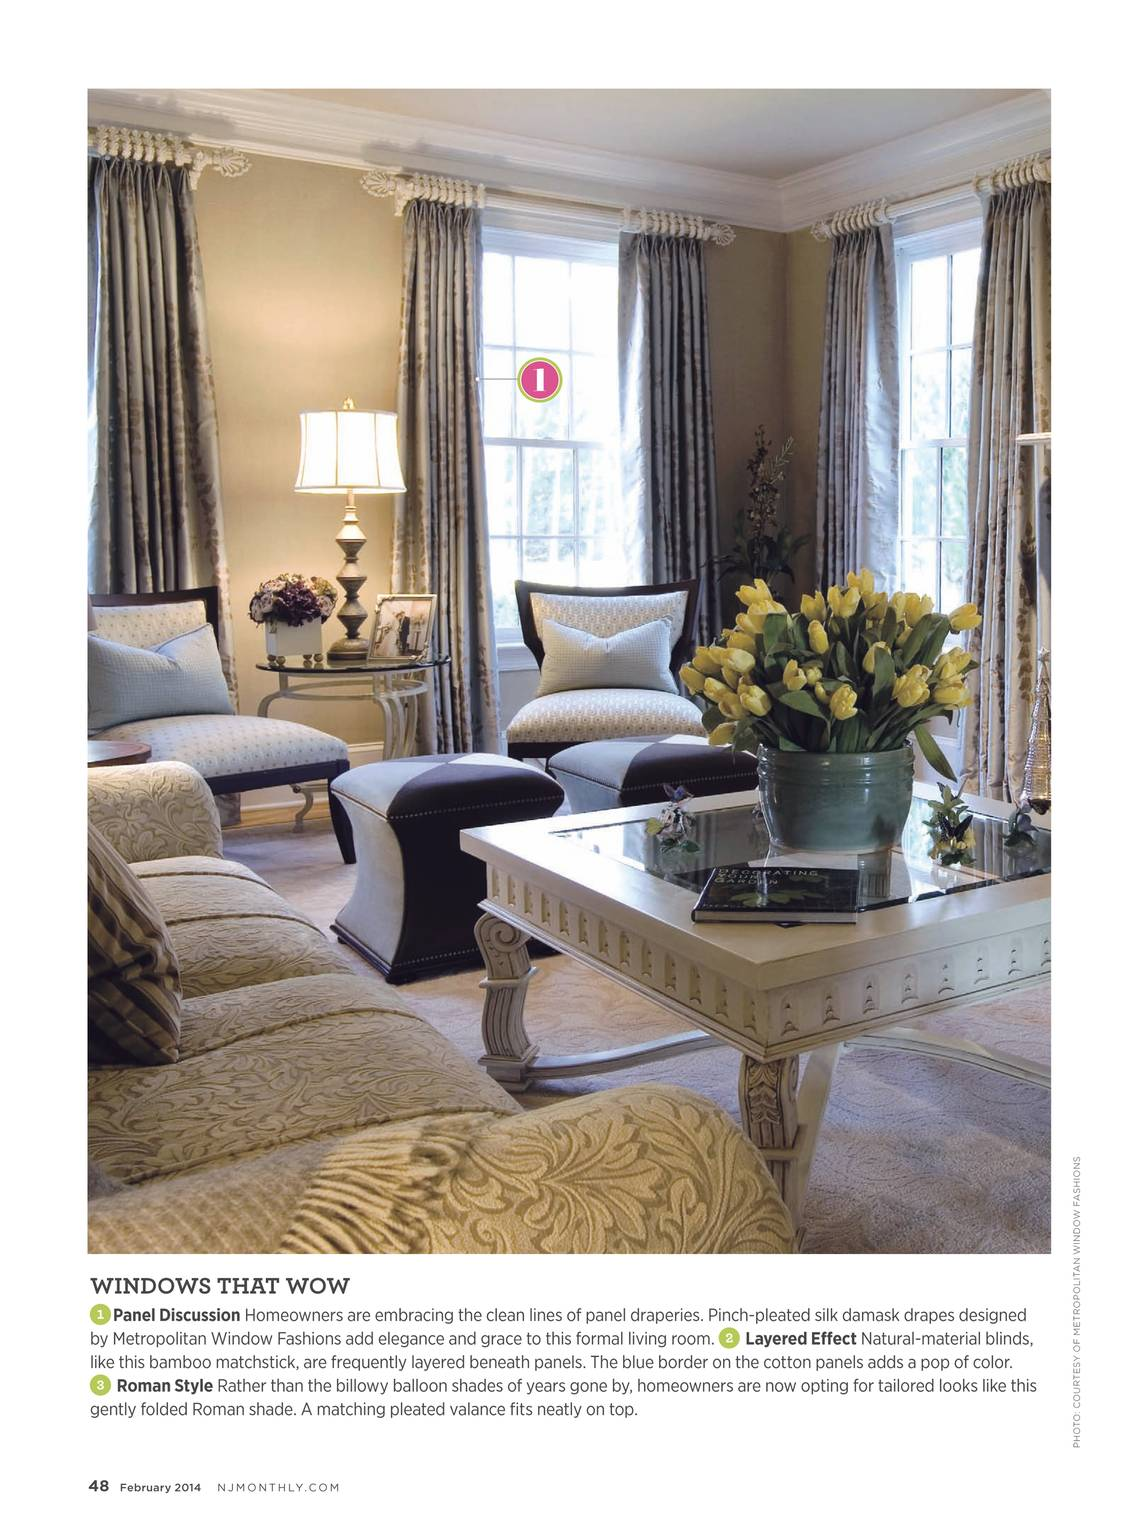 metropolitan window fashions fabric page 48 nj monthly february 2014 page 49